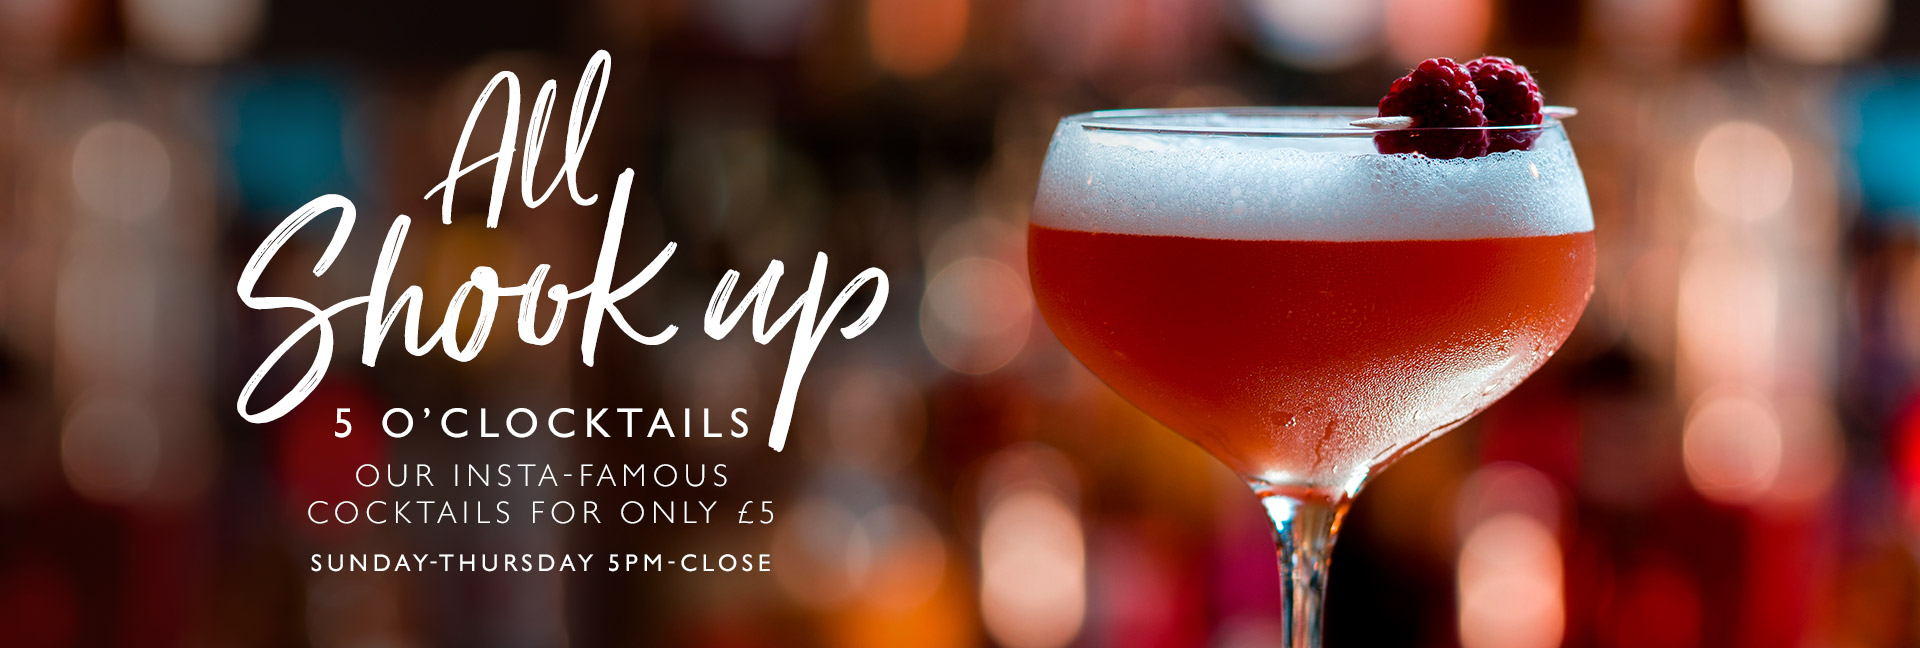 5 O'clocktails at All Bar One Houndsditch - Book now